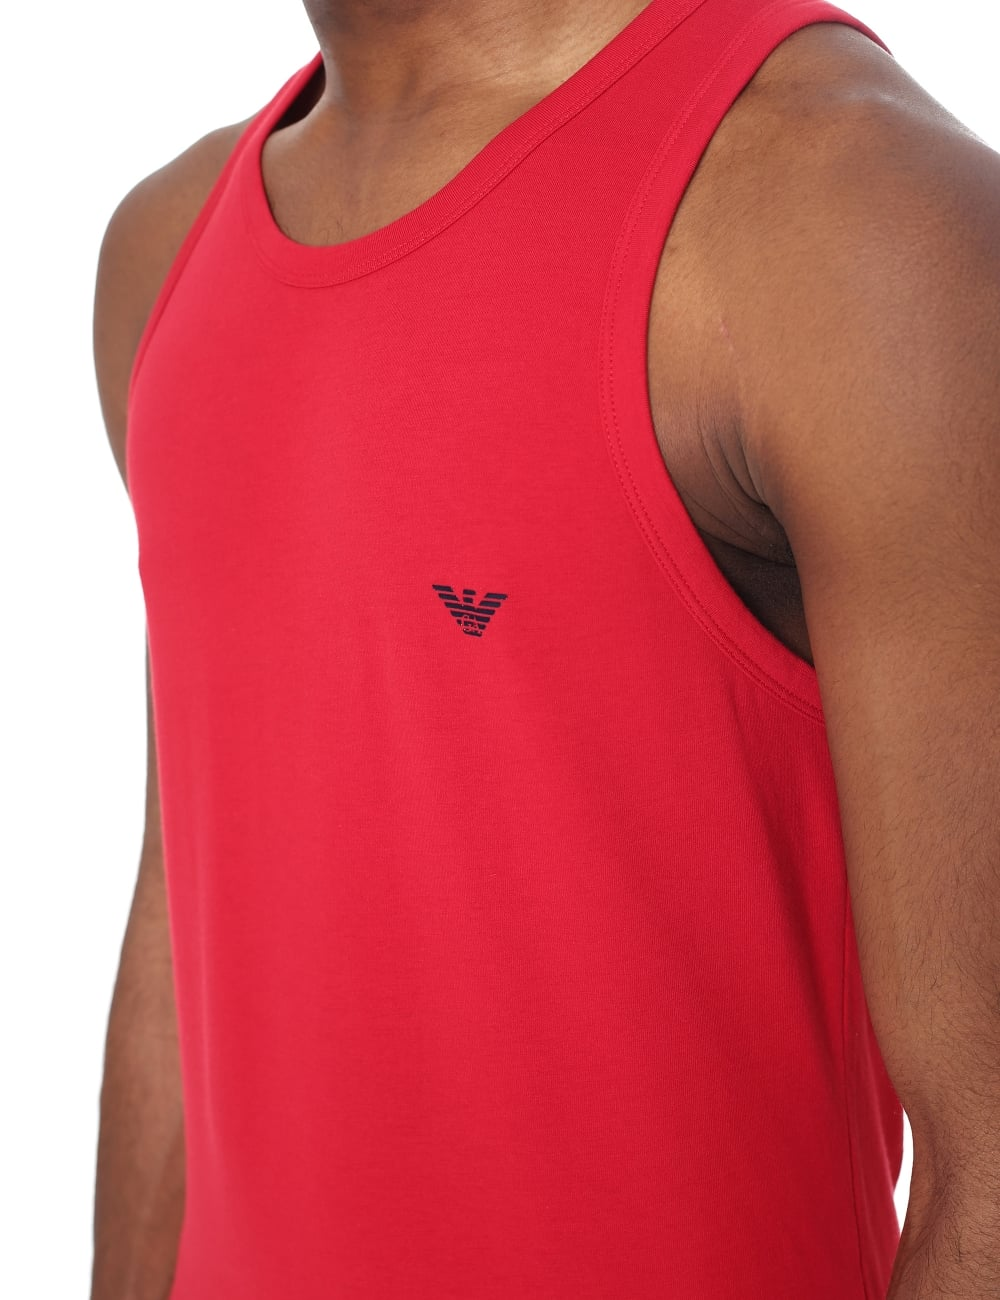 4ccb0aa92cf17 ... Emporio Armani Men s Tank Top. Tap image to zoom. Men  039 ...